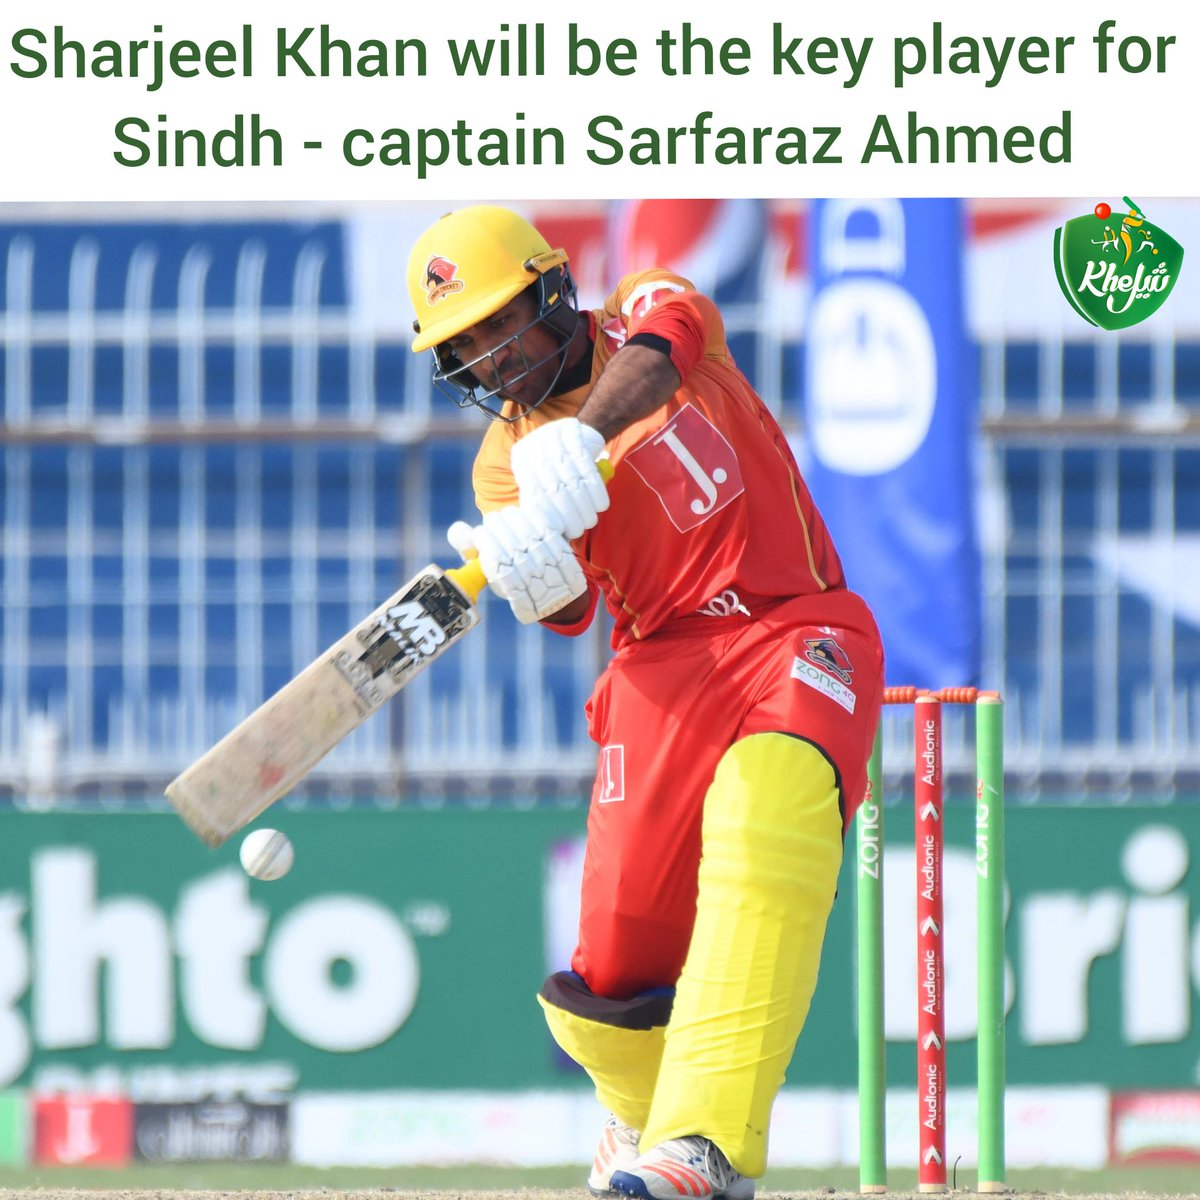 Sindh captain @SarfarazA_54 said when @SharjeelLeo14 plays he makes the game one sided.  #Cricket #Pakistan #SarfarazAhmed #SharjeelKhan #NationalT20Cup #PCB #Multan https://t.co/mK1zSX9LAL